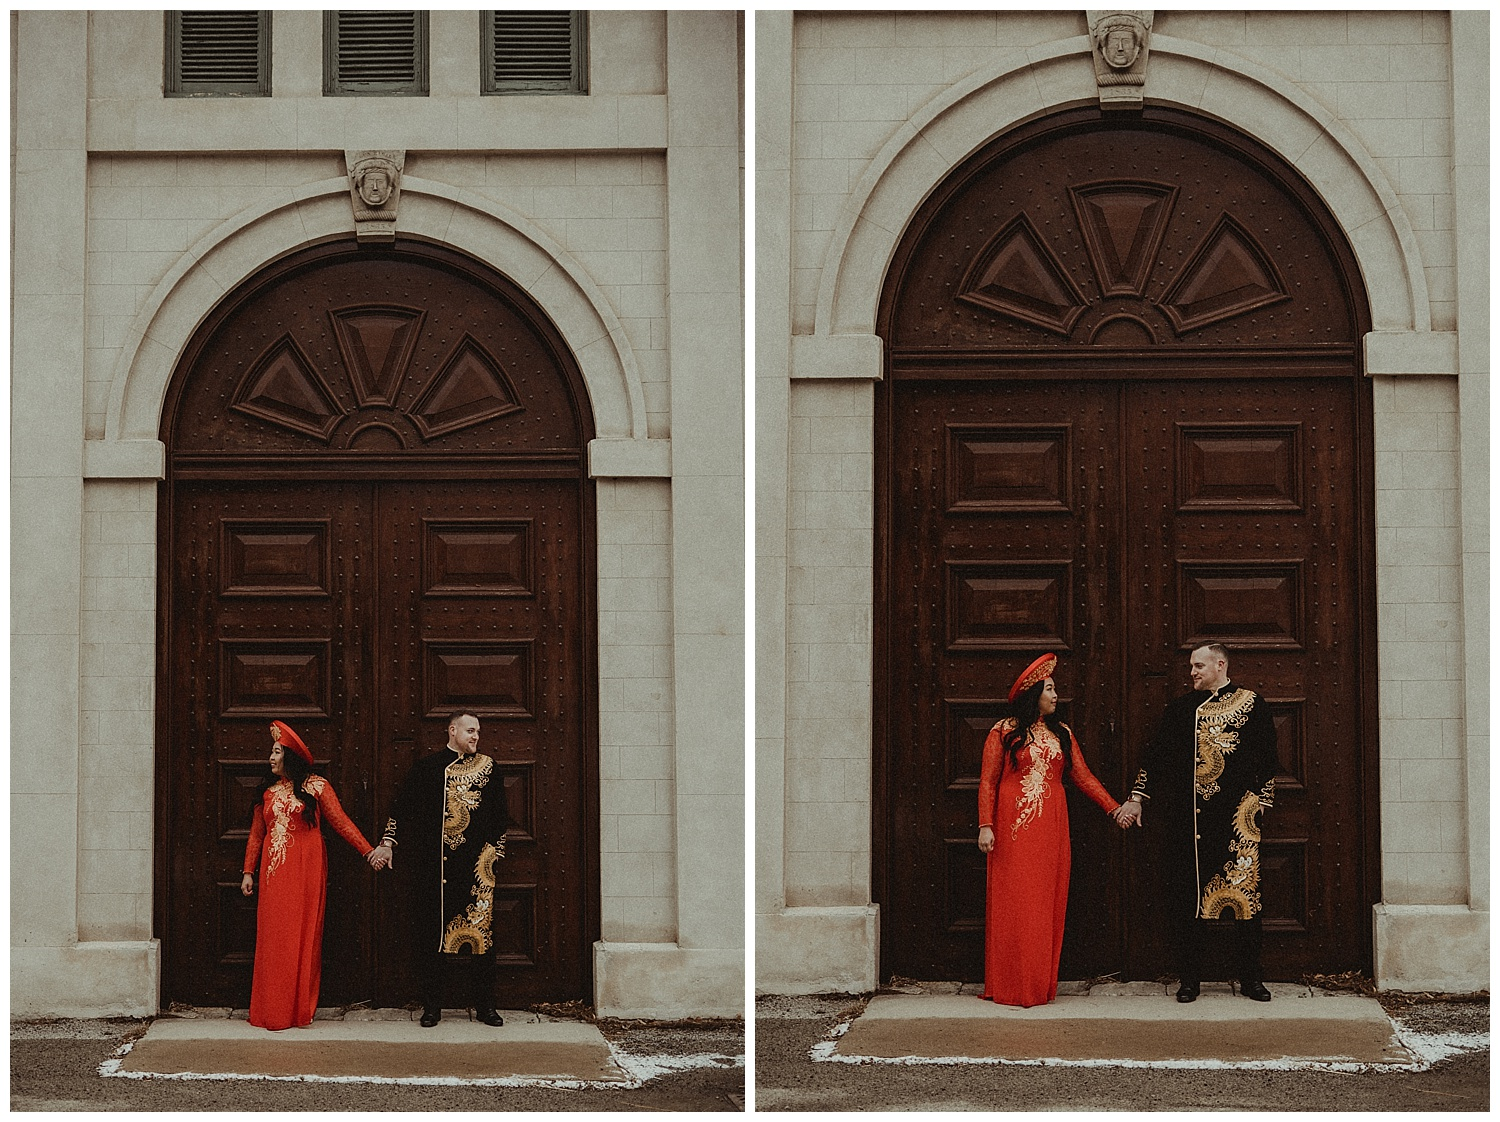 Katie Marie Photography | Hamilton Ontario Wedding Photographer | Hamilton Engagement Session | HamOnt | Vietnamese Engagement Session | Traditional Outfit Engagement Session | Dundurn Castle_0003.jpg